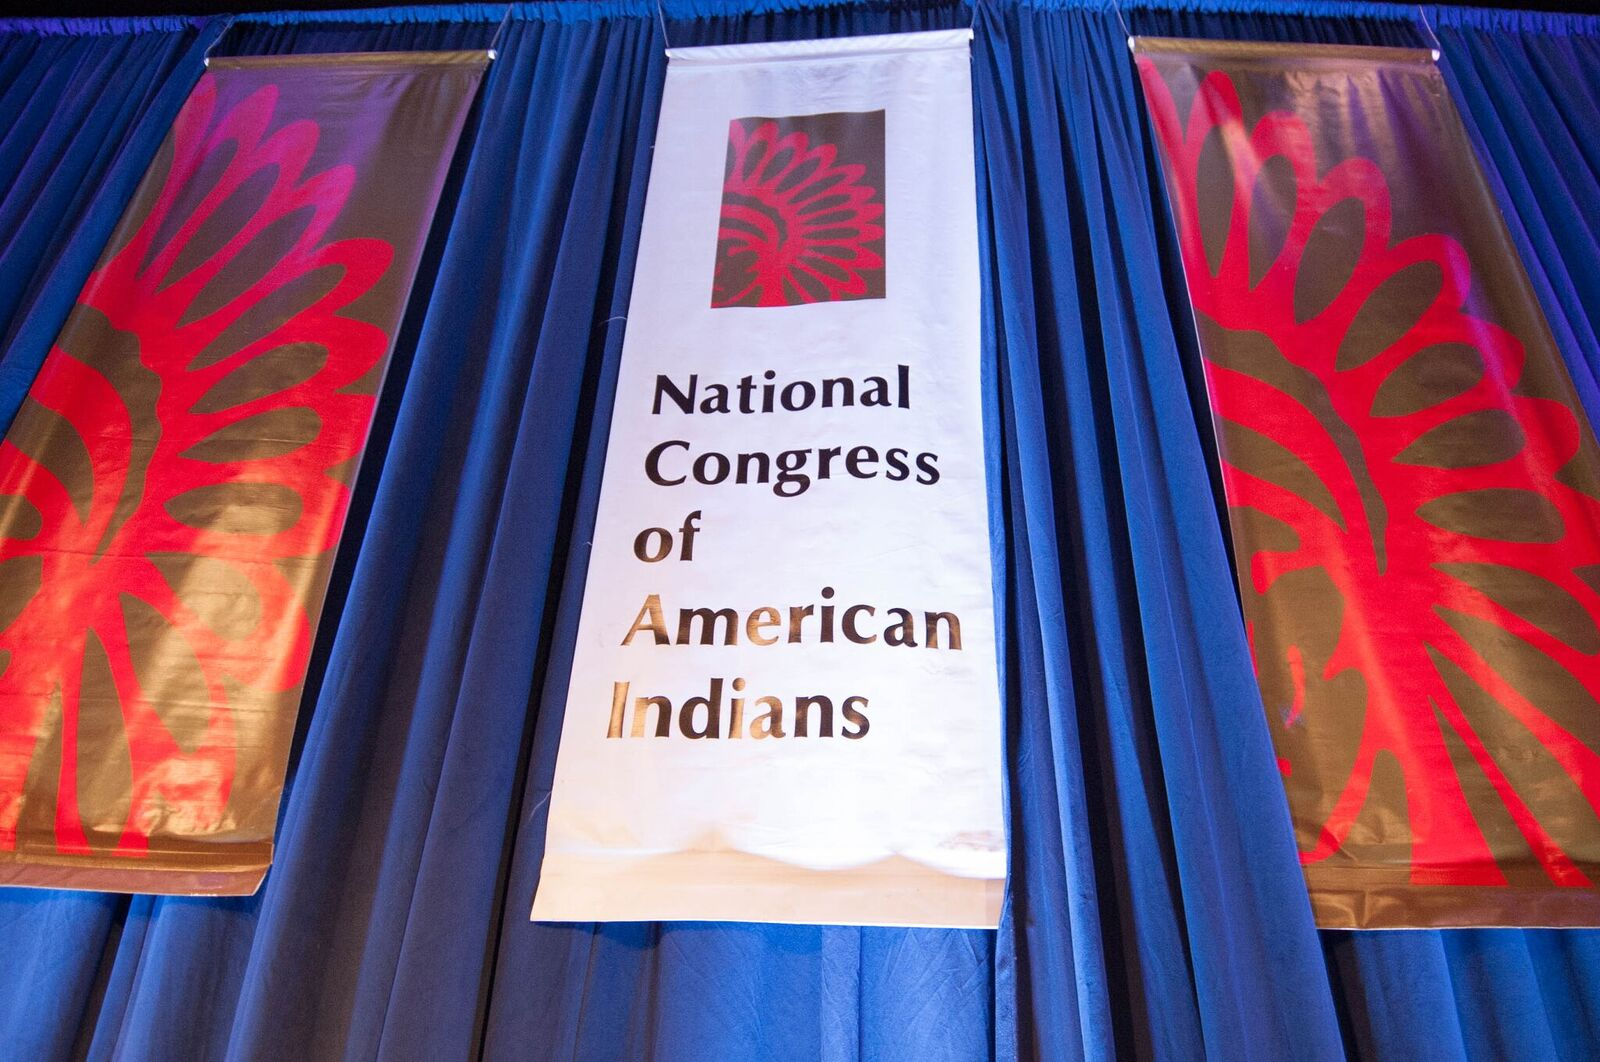 Tribes demand accountability from National Congress of American Indians